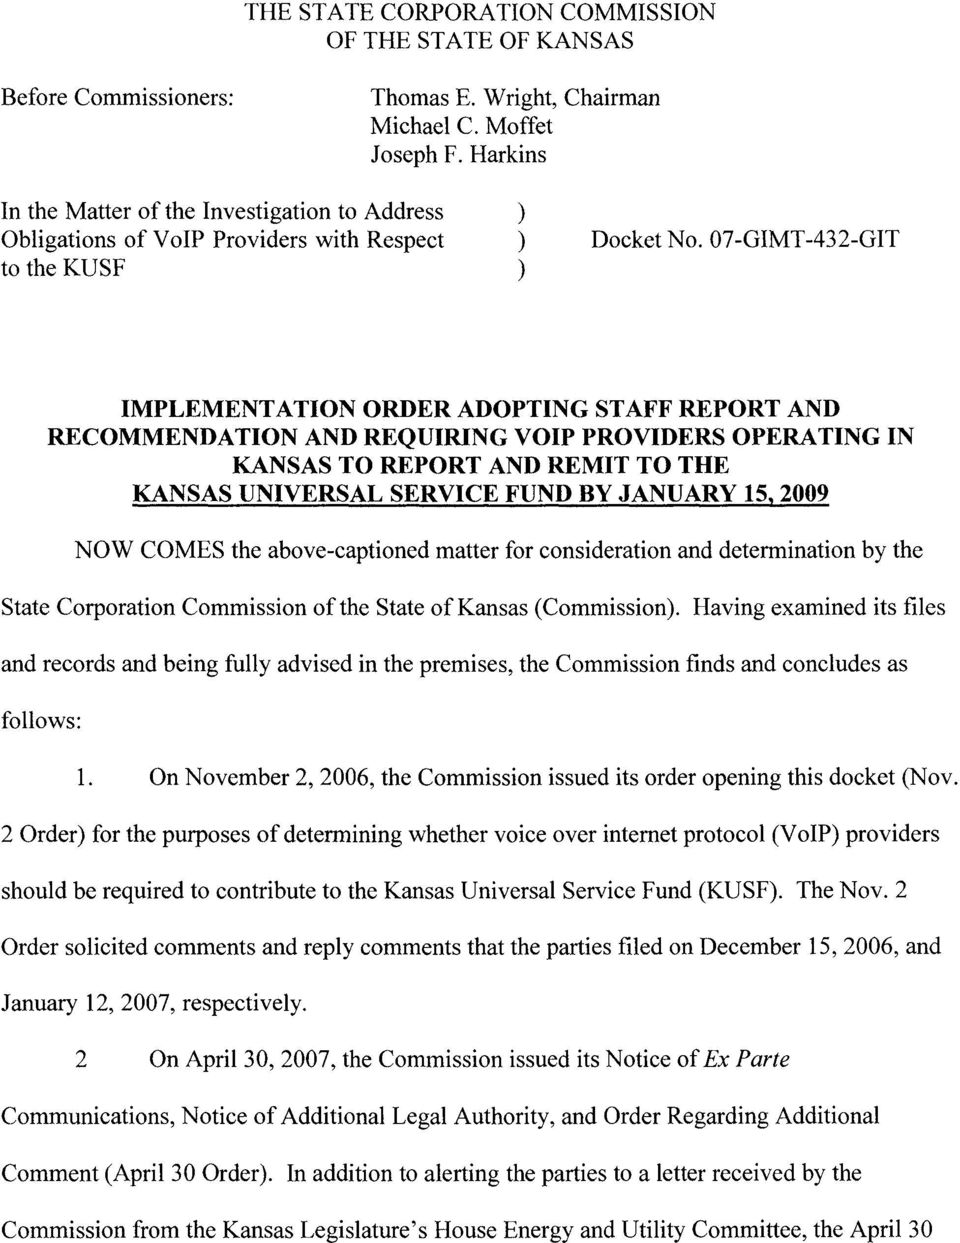 07-GIMT-432-GIT IMPLEMENTATION ORDER ADOPTING STAFF REPORT AND RECOMMENDATION AND REQUIRING VOIP PROVIDERS OPERATING IN KANSAS TO REPORT AND REMIT TO THE KANSAS UNIVERSAL SERVICE FUND BY JANUARY 15,